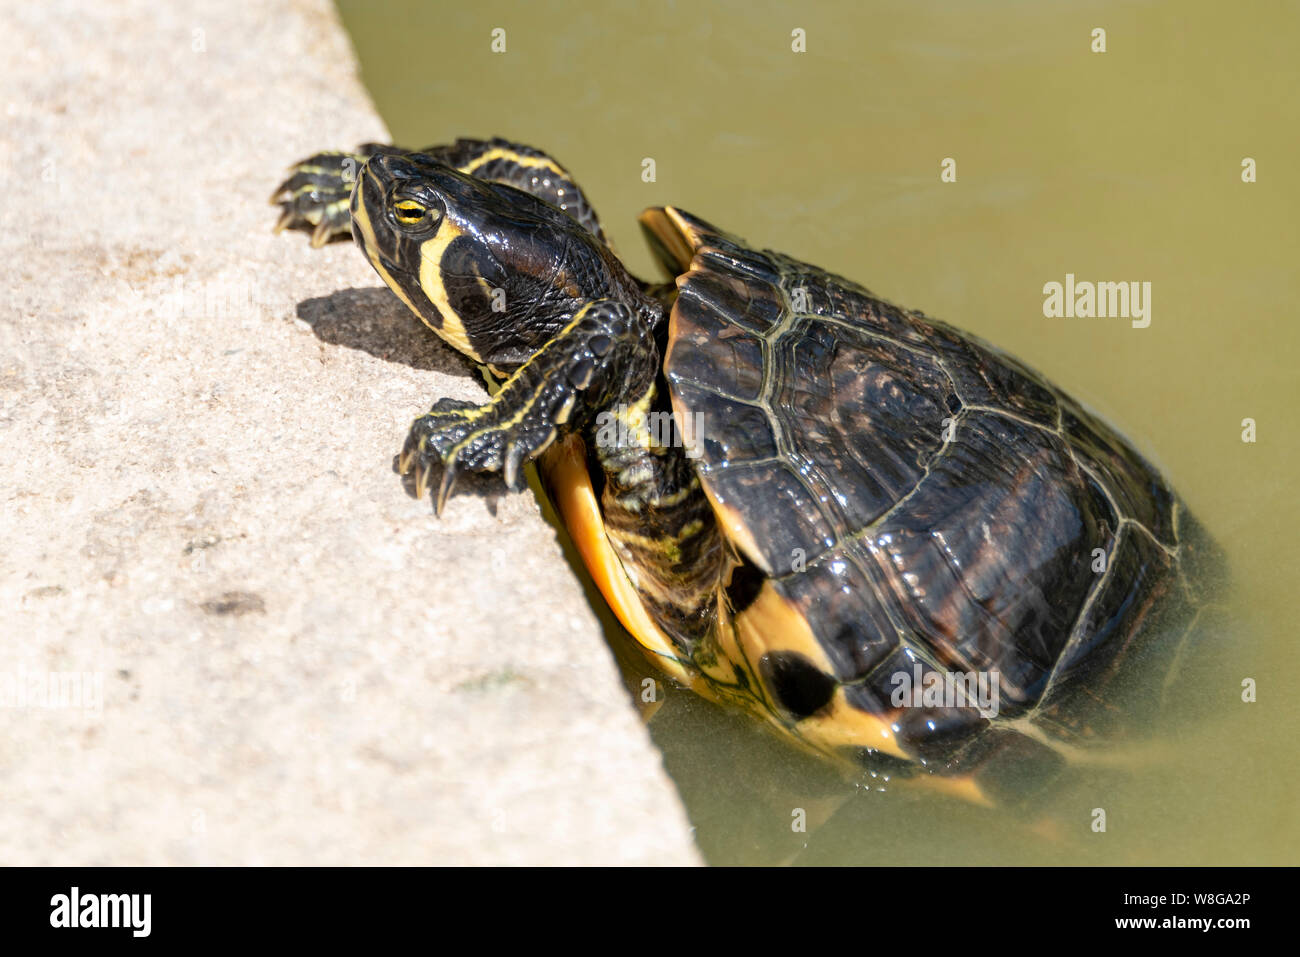 Horizontal close up of a yellow-bellied slider turtle. Stock Photo